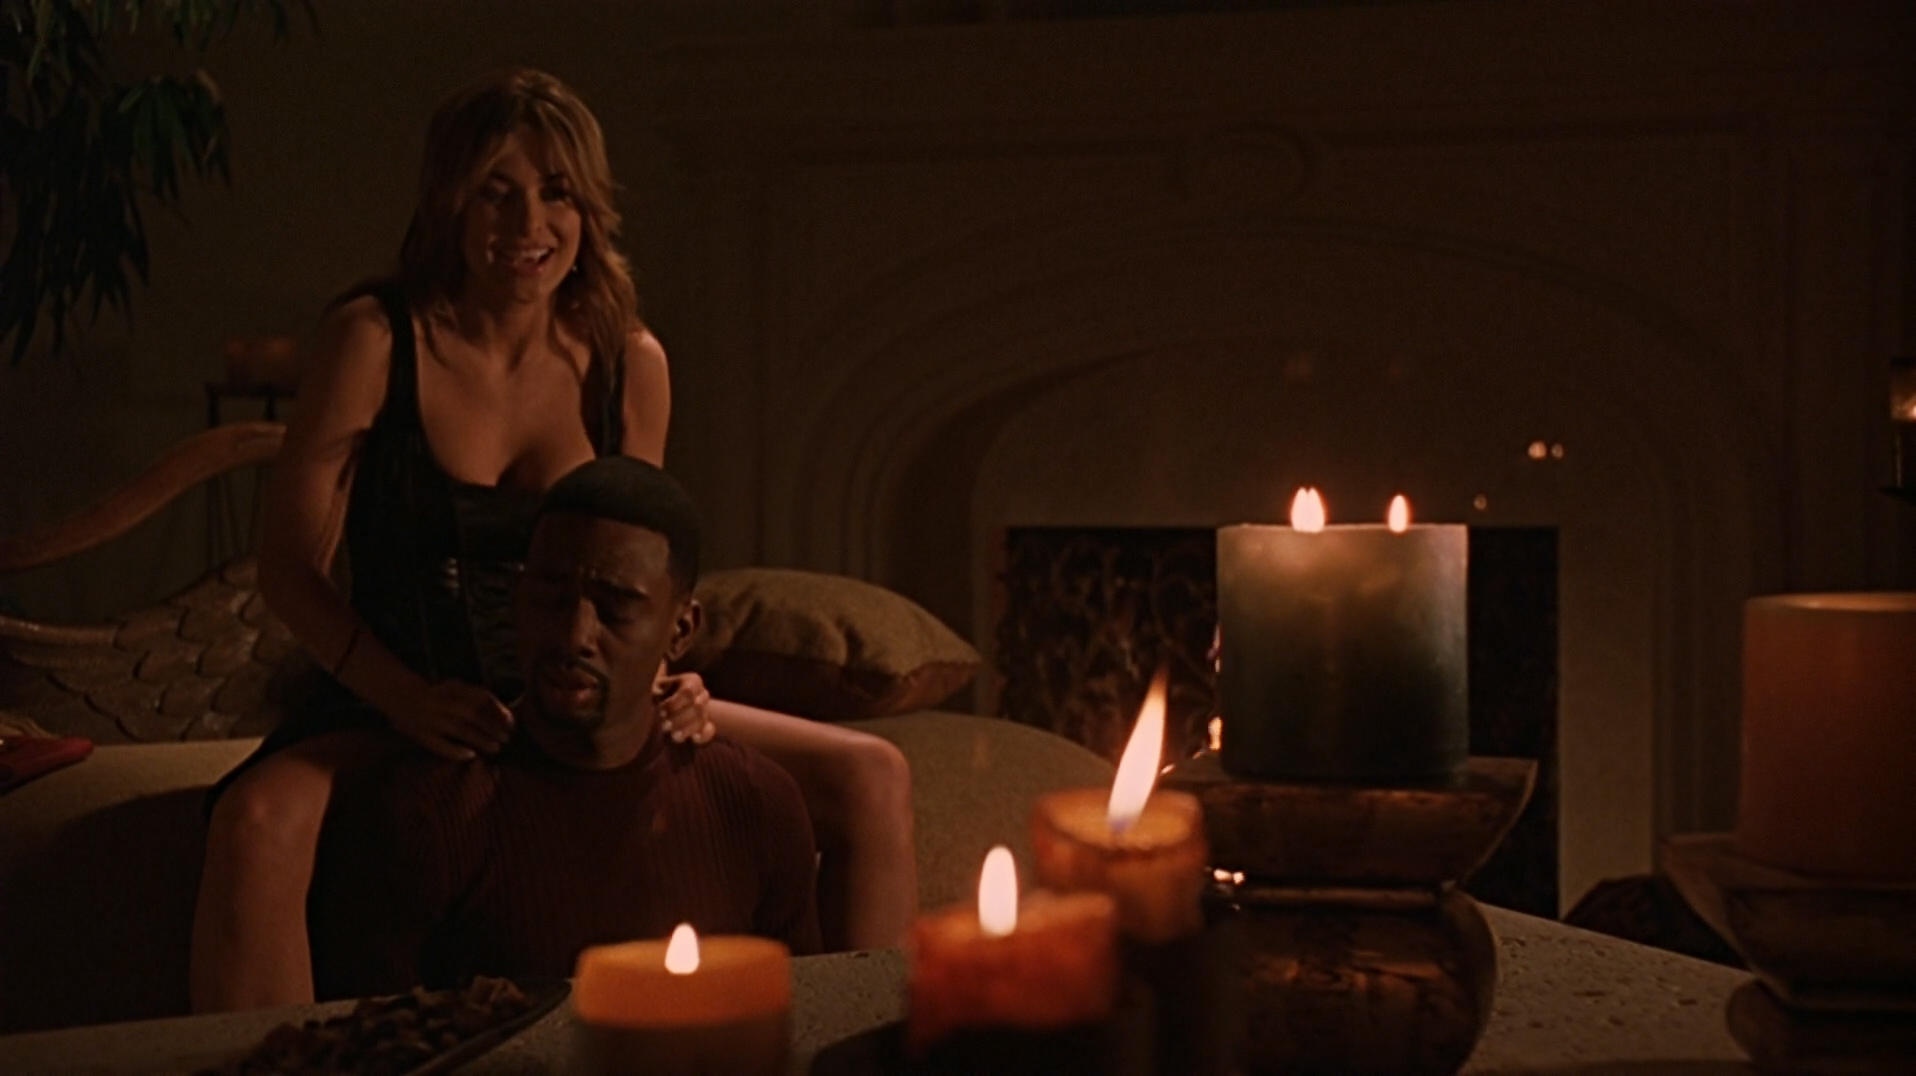 Vivica A. Fox hot in lingerie and Carmen Electra hot panties - Getting Played (2006) hd1080p Web-DL (5)